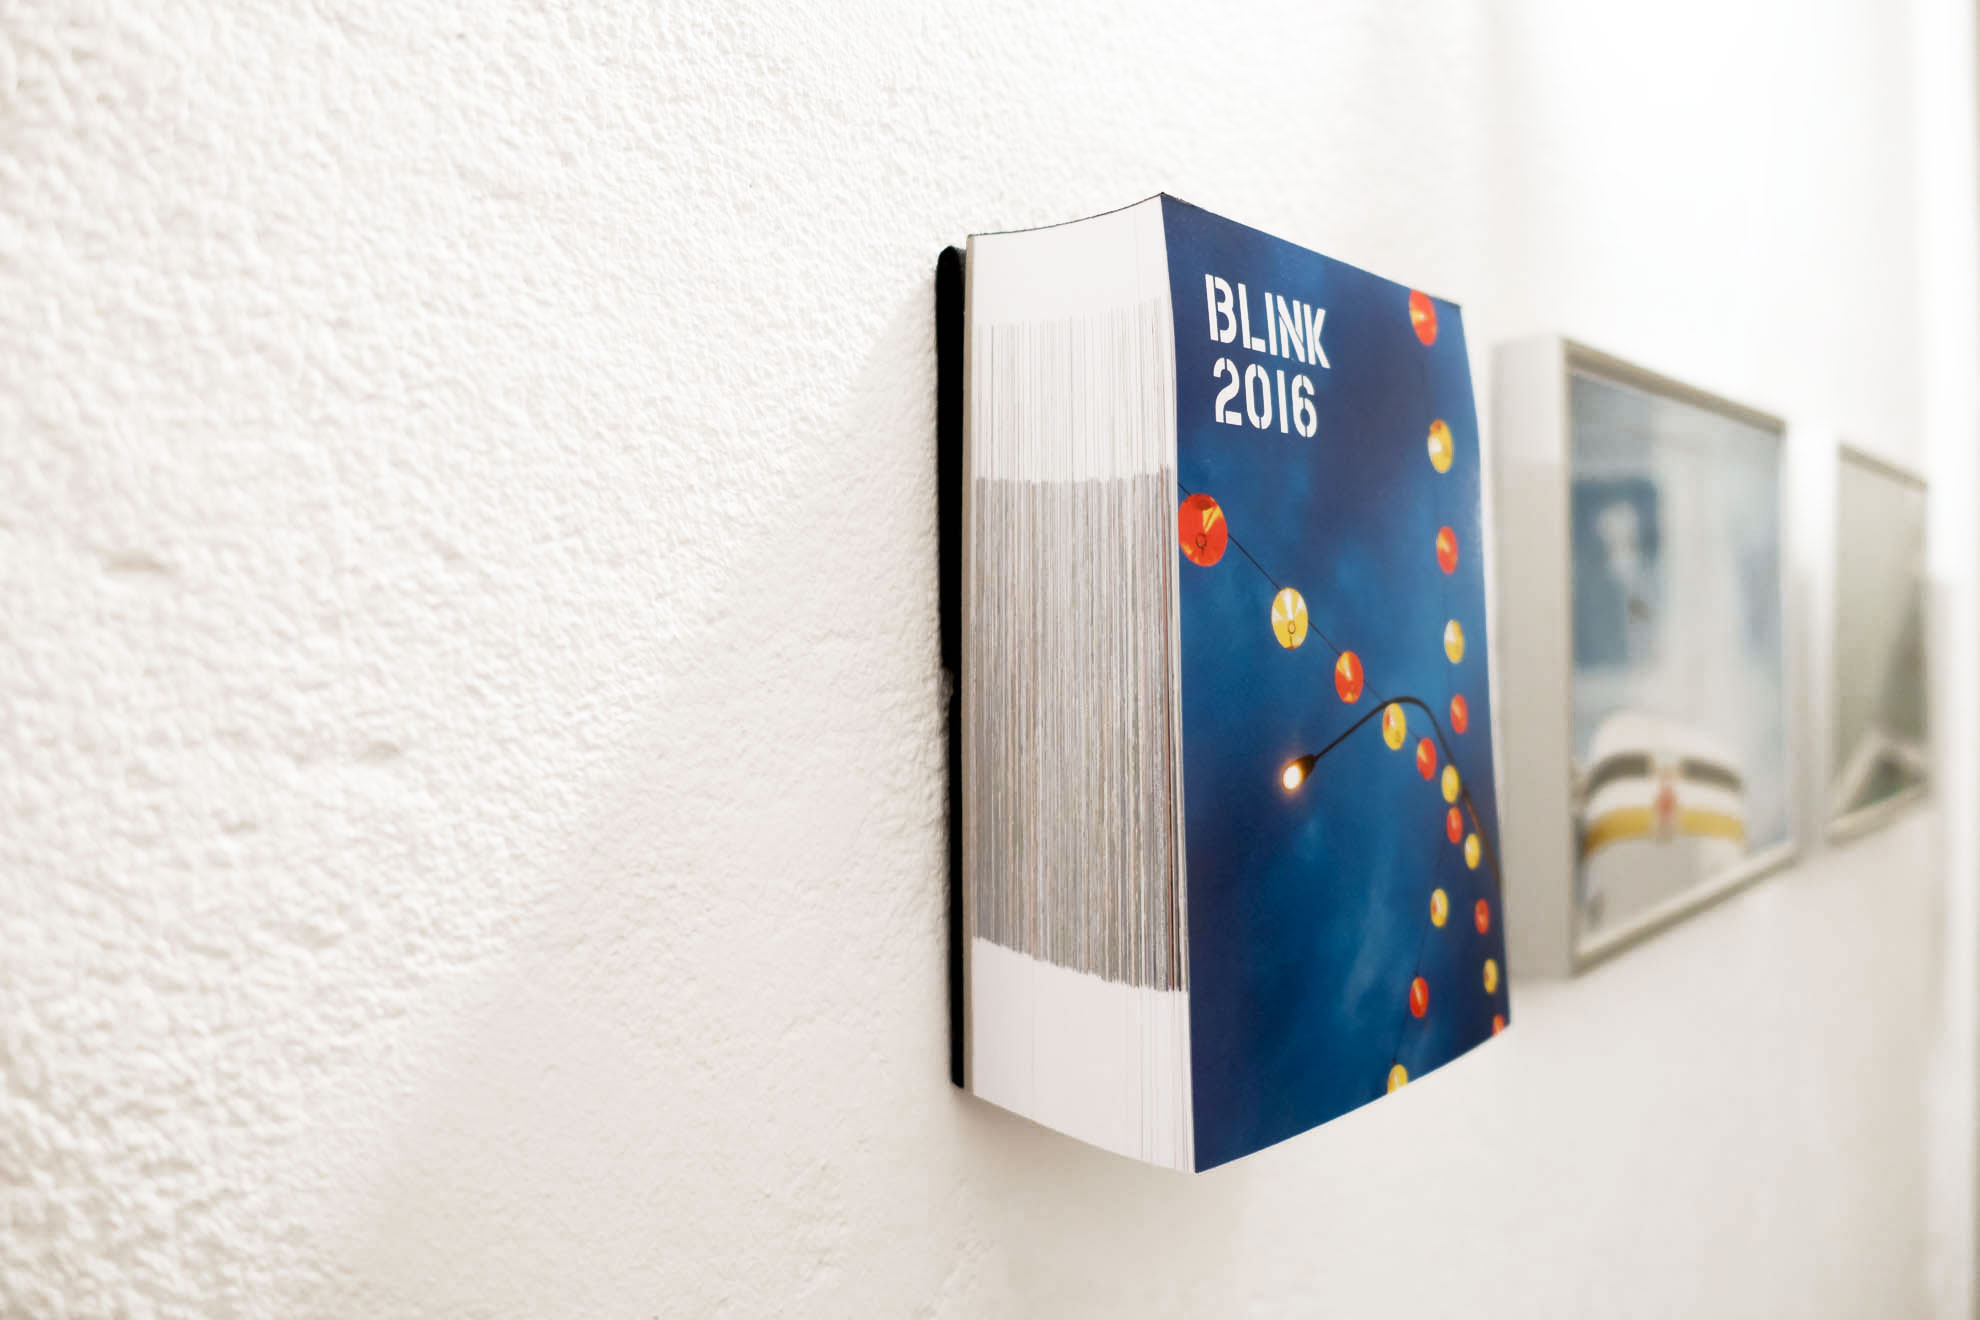 BLINK2016_PACIFICO-GRAFIK_08DSC02921